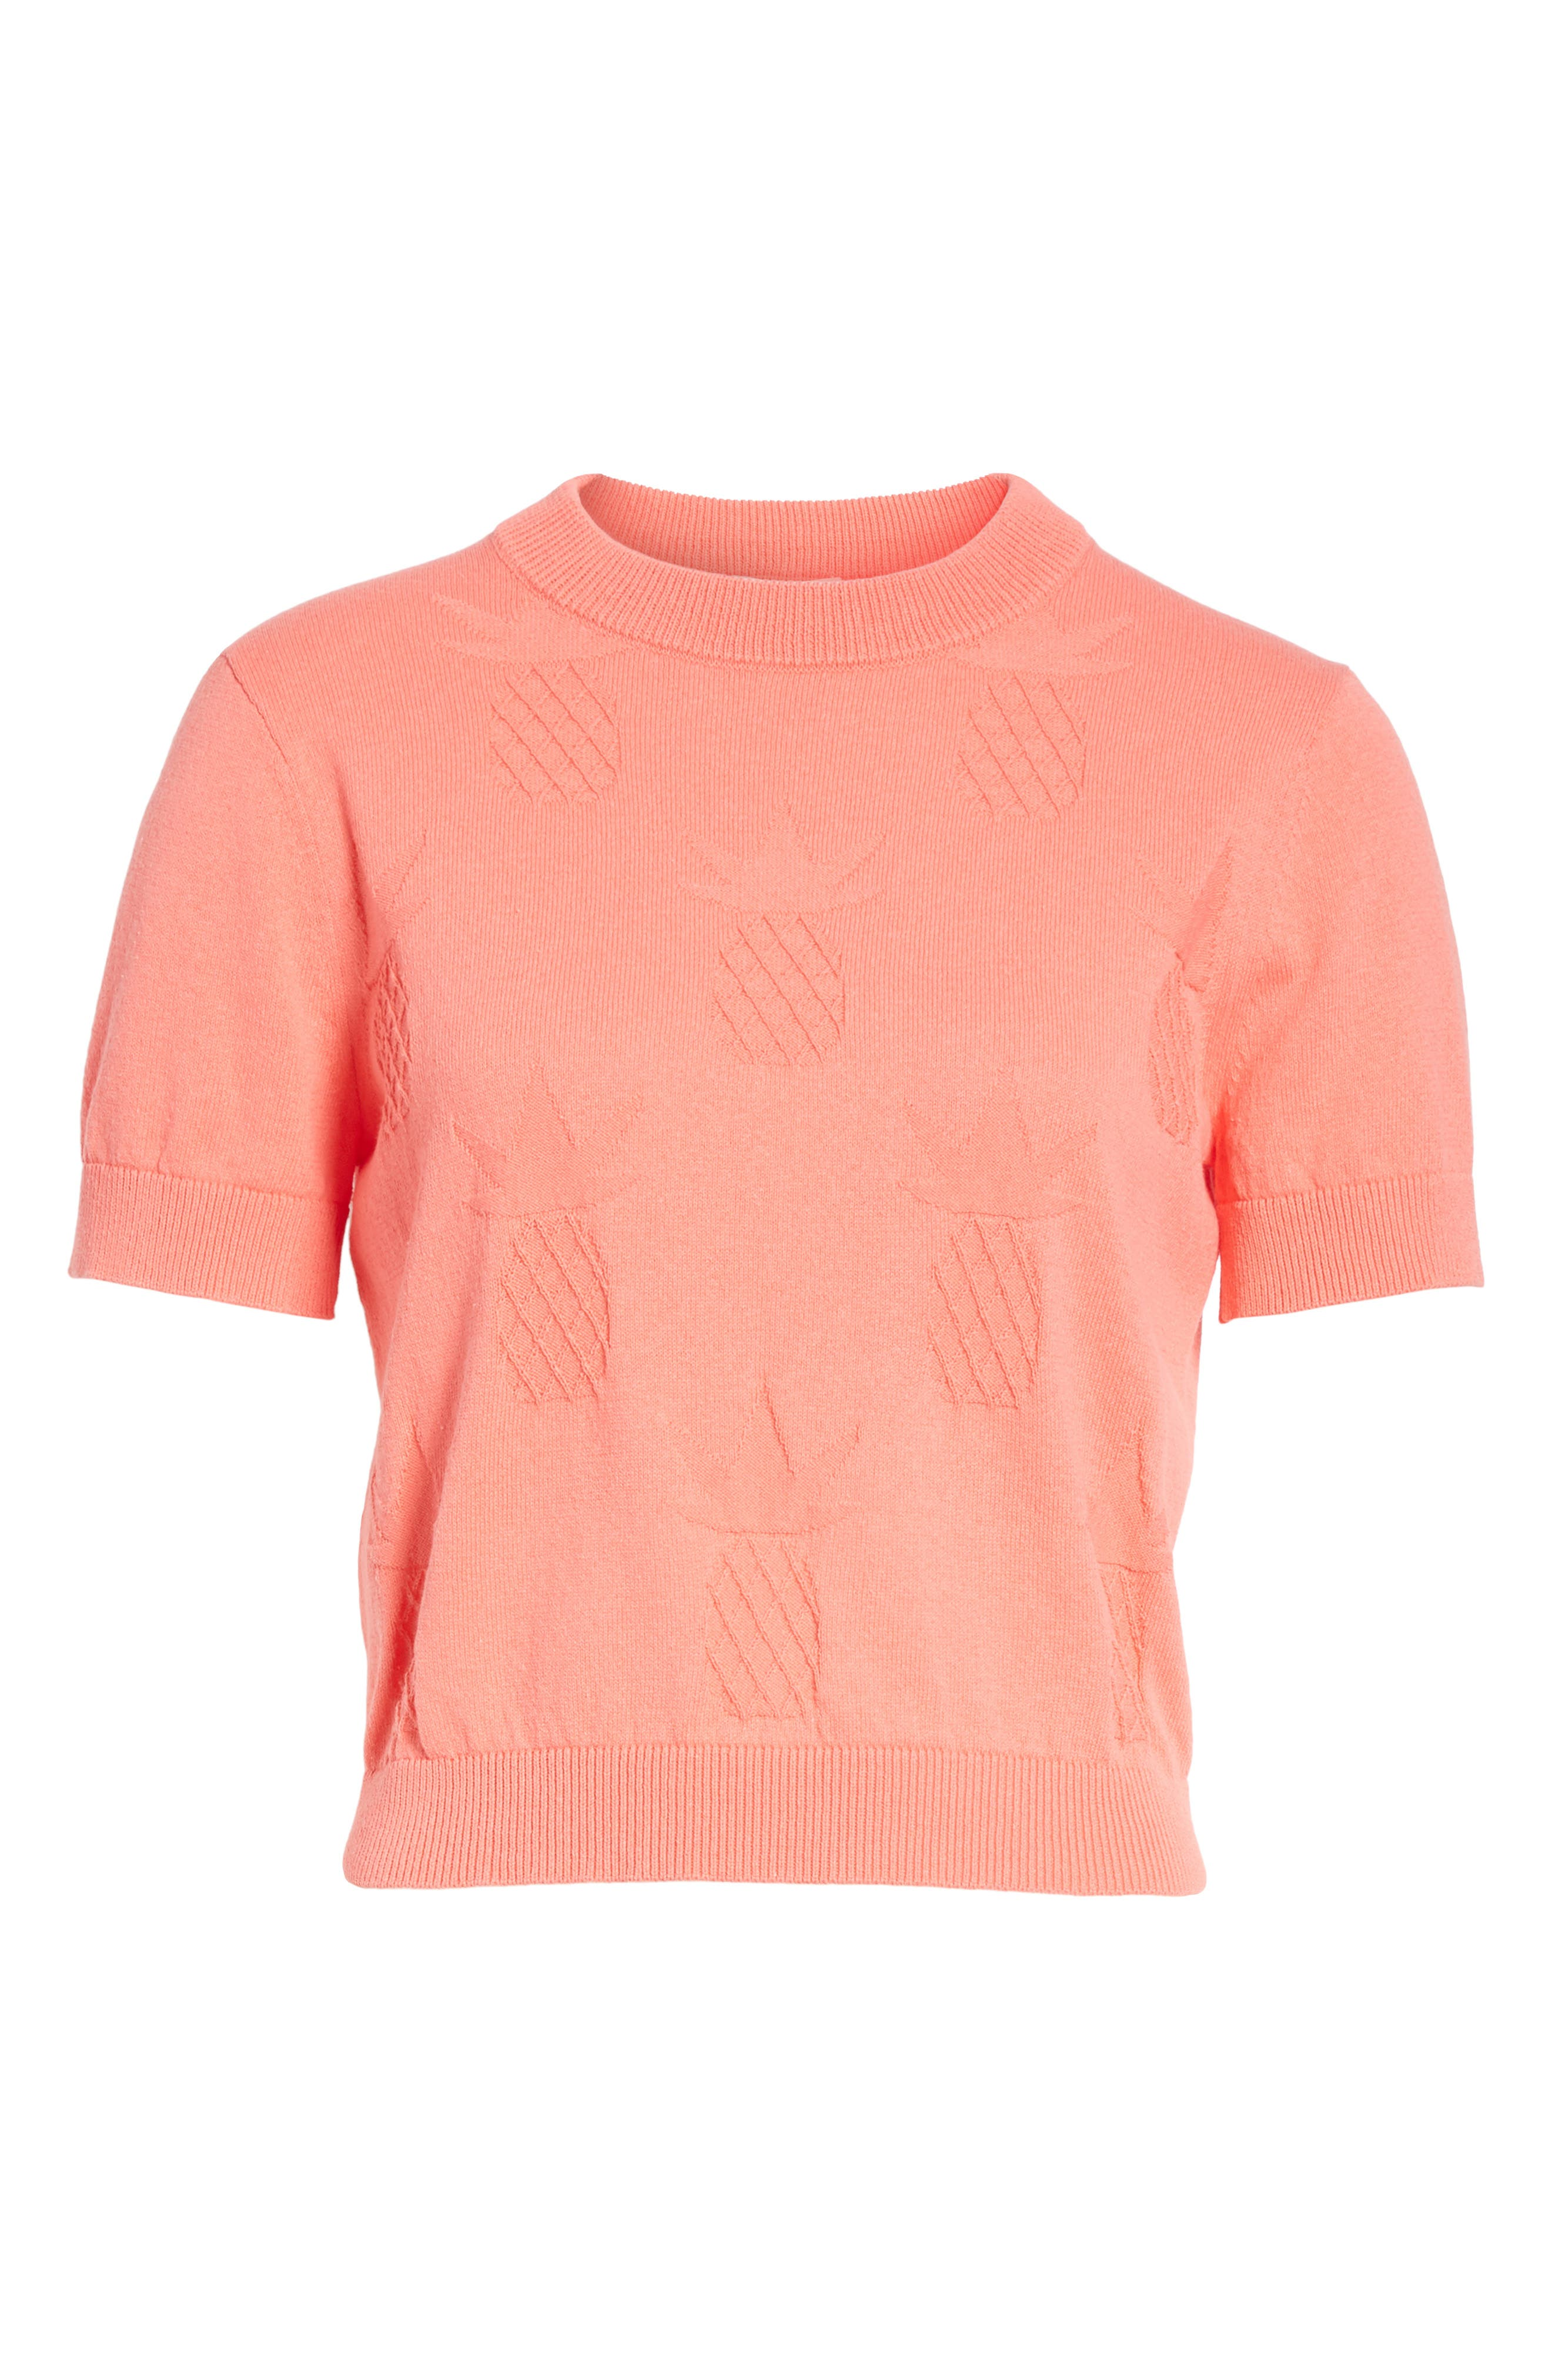 pineapple textured sweater,                             Alternate thumbnail 6, color,                             Apricot Sorbet